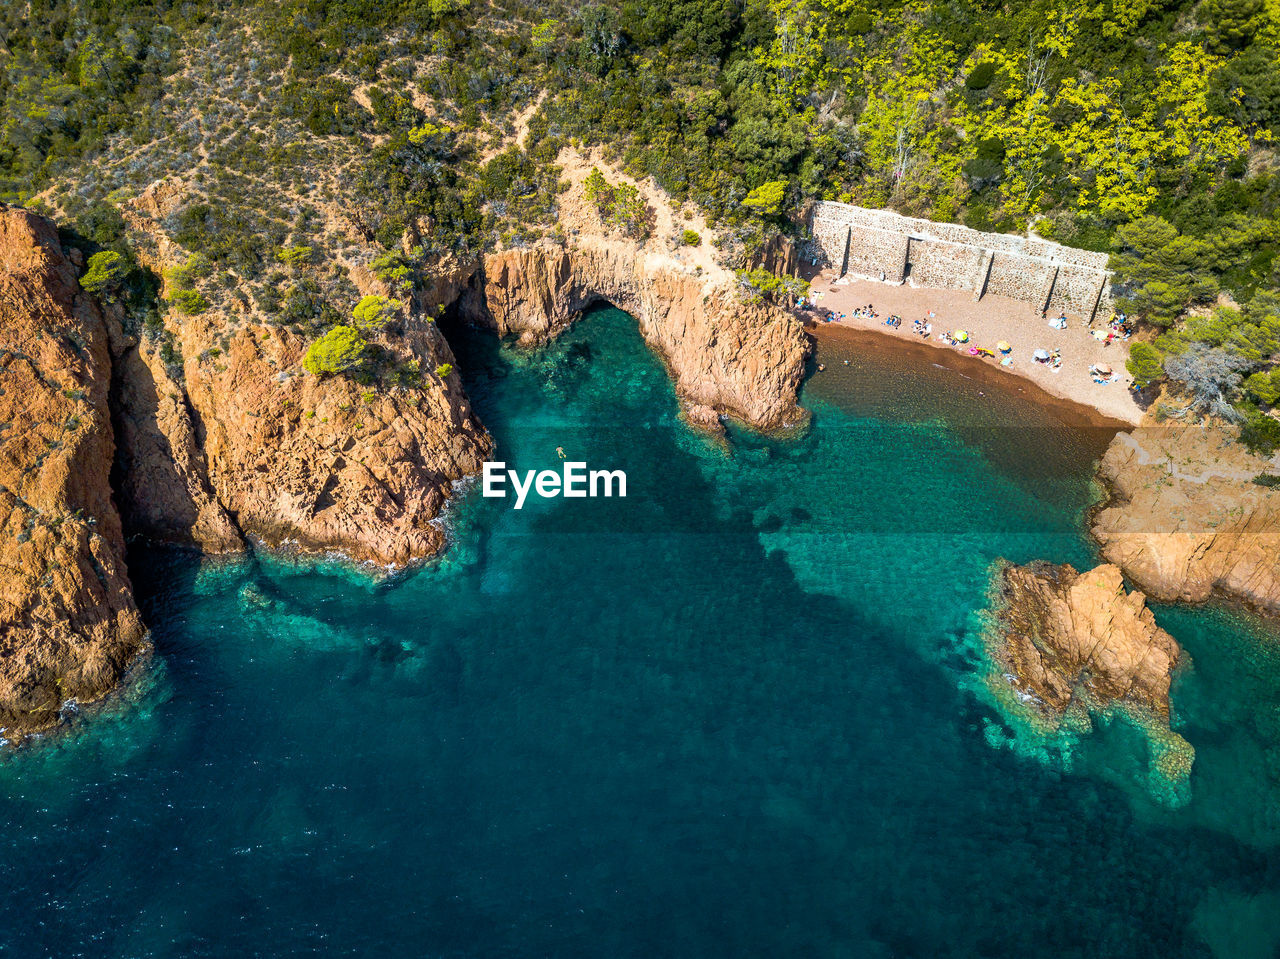 water, rock - object, rock, sea, solid, nature, scenics - nature, land, beauty in nature, travel destinations, high angle view, idyllic, turquoise colored, architecture, no people, day, tourism, travel, outdoors